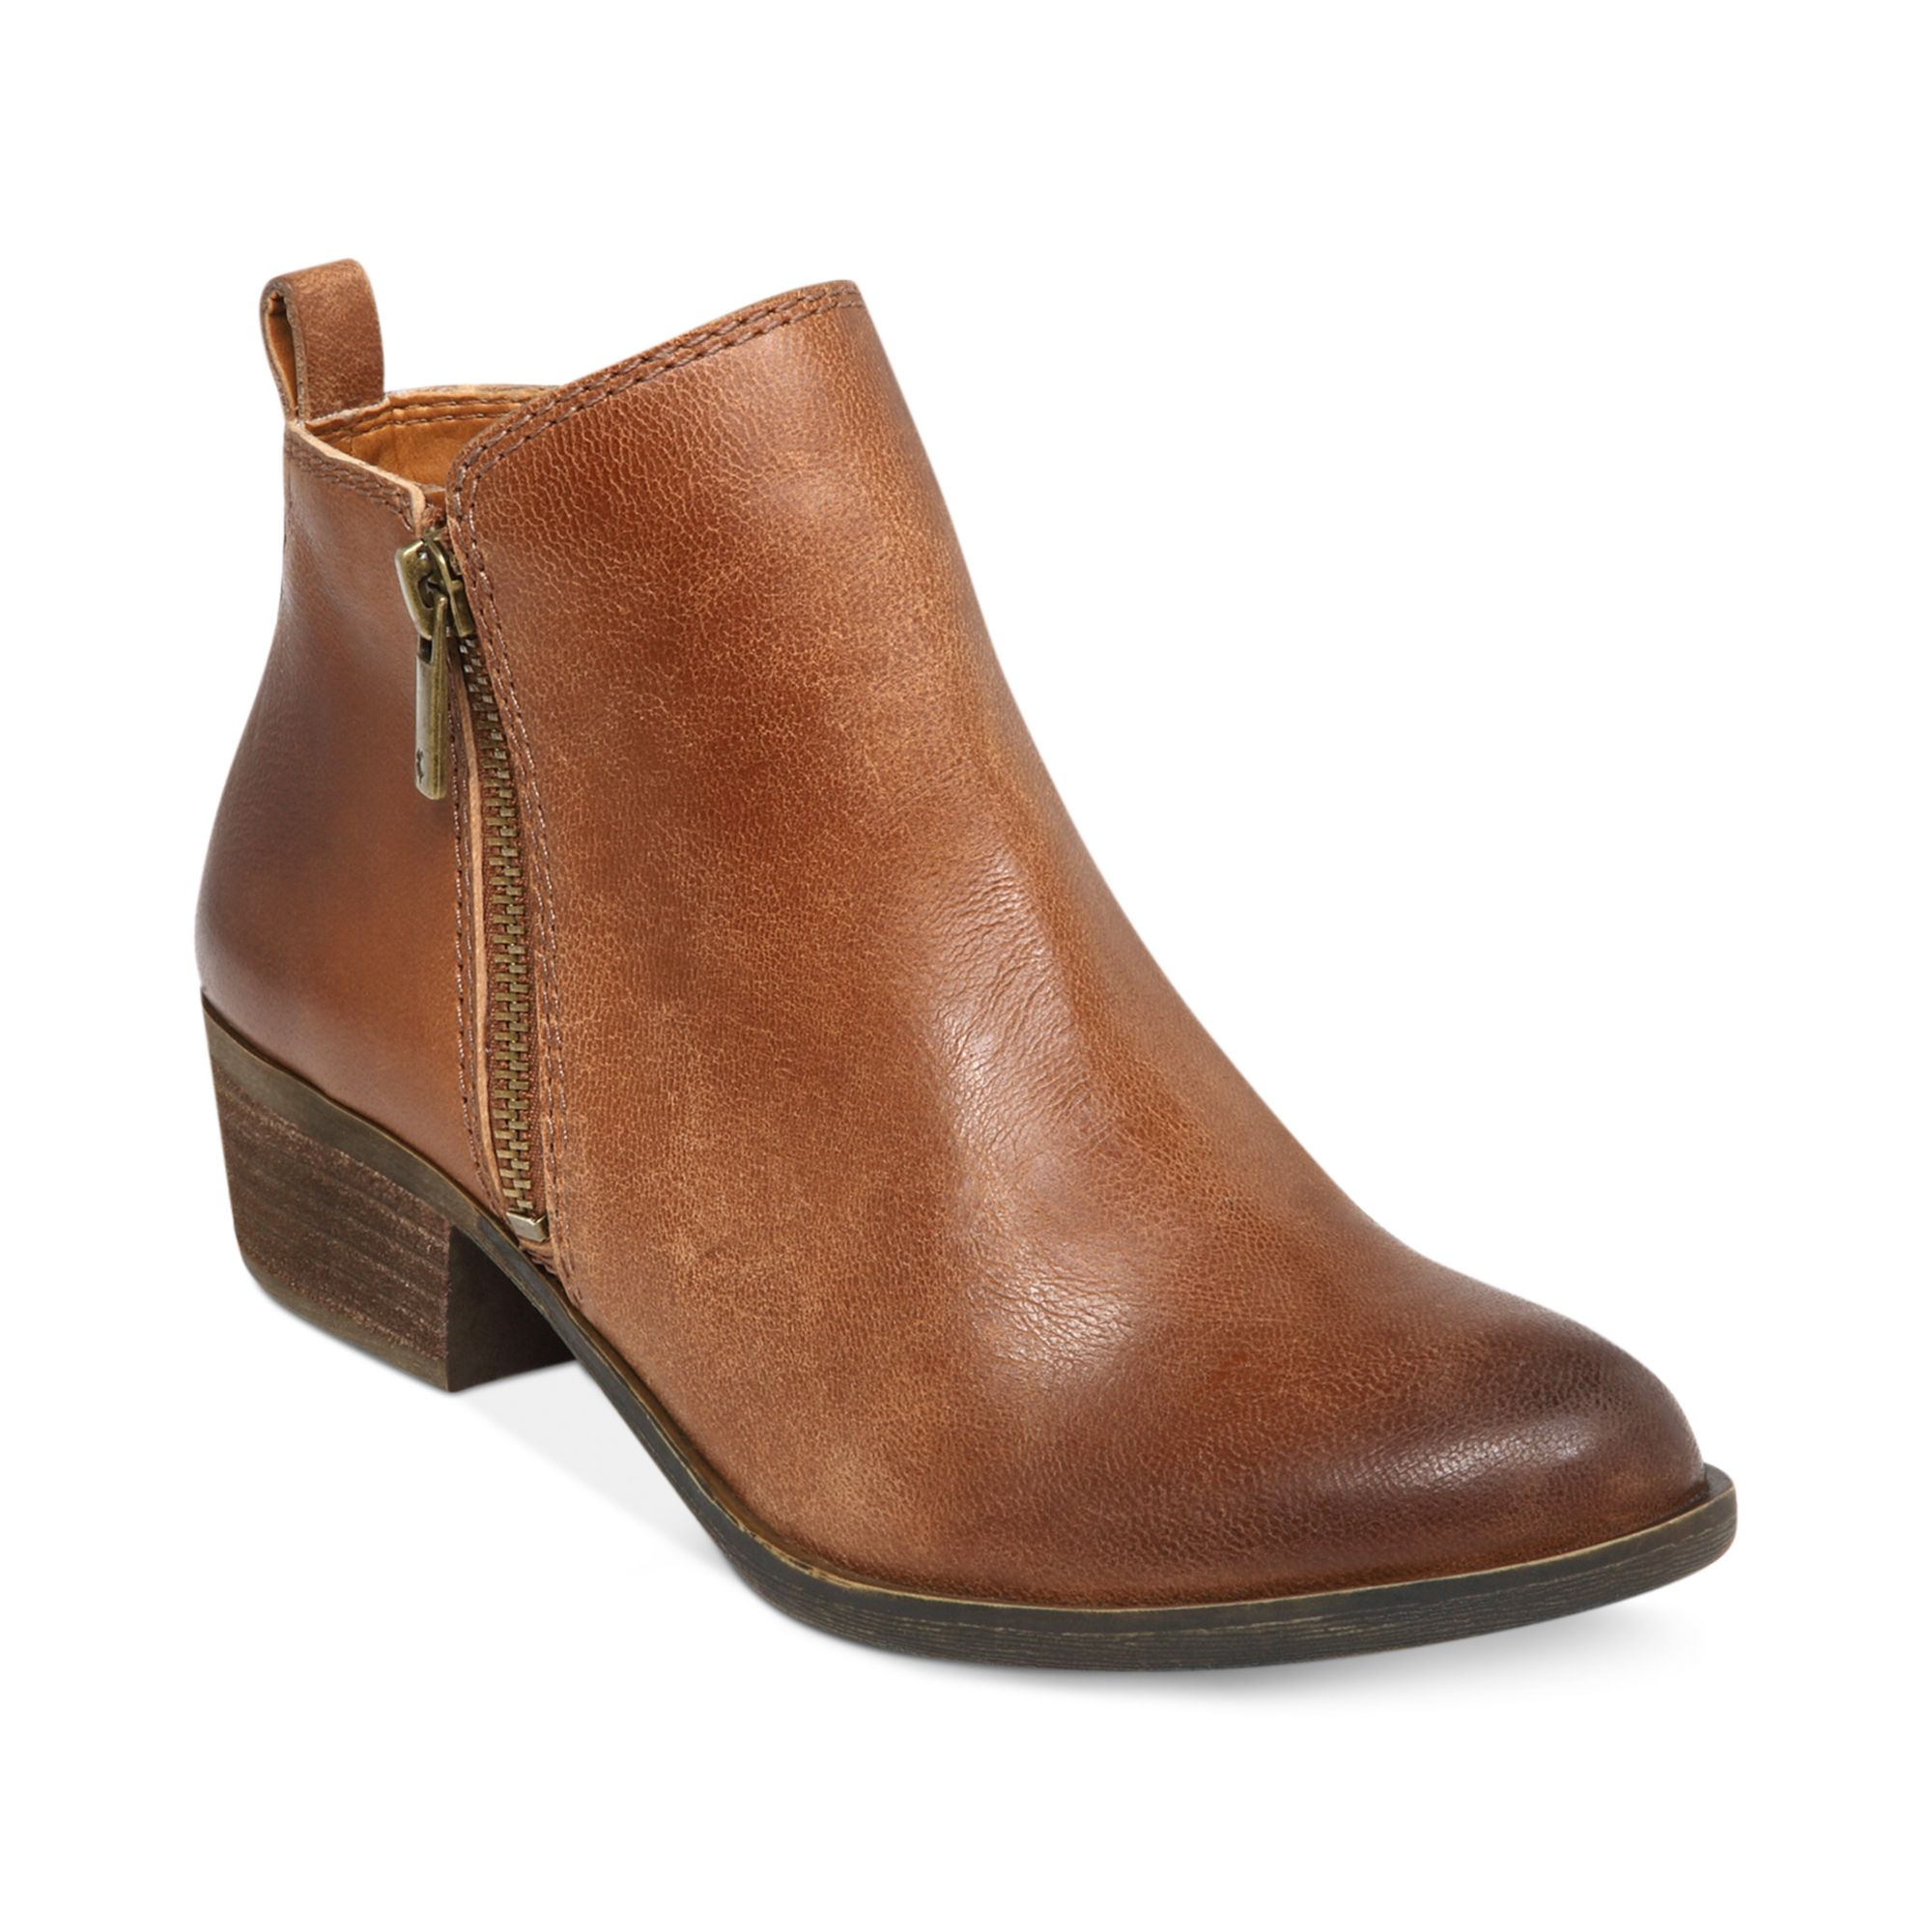 Boots. It's women's boot season! Whether it's booties, wedge boots or knee high boots, you can pick from a whole array of LifeStride boots for women. Everyone's talking booties. For women like you, you'll want to start with black ankle boots or wedge booties and go from there.